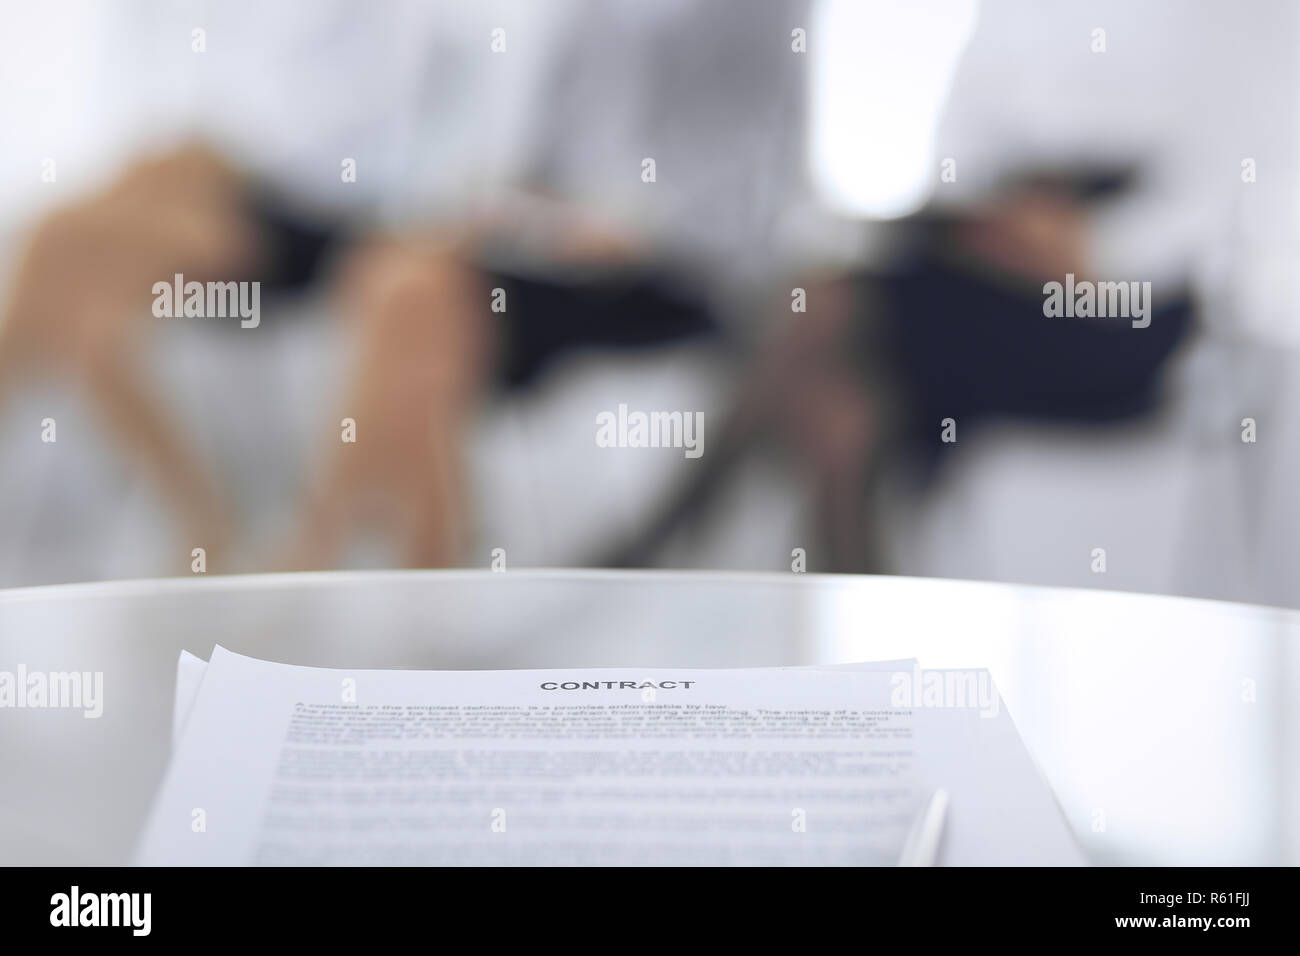 Contract with a pen and blurred business people on the background, close-up. Female candidates waiting for interview at queue - Stock Image